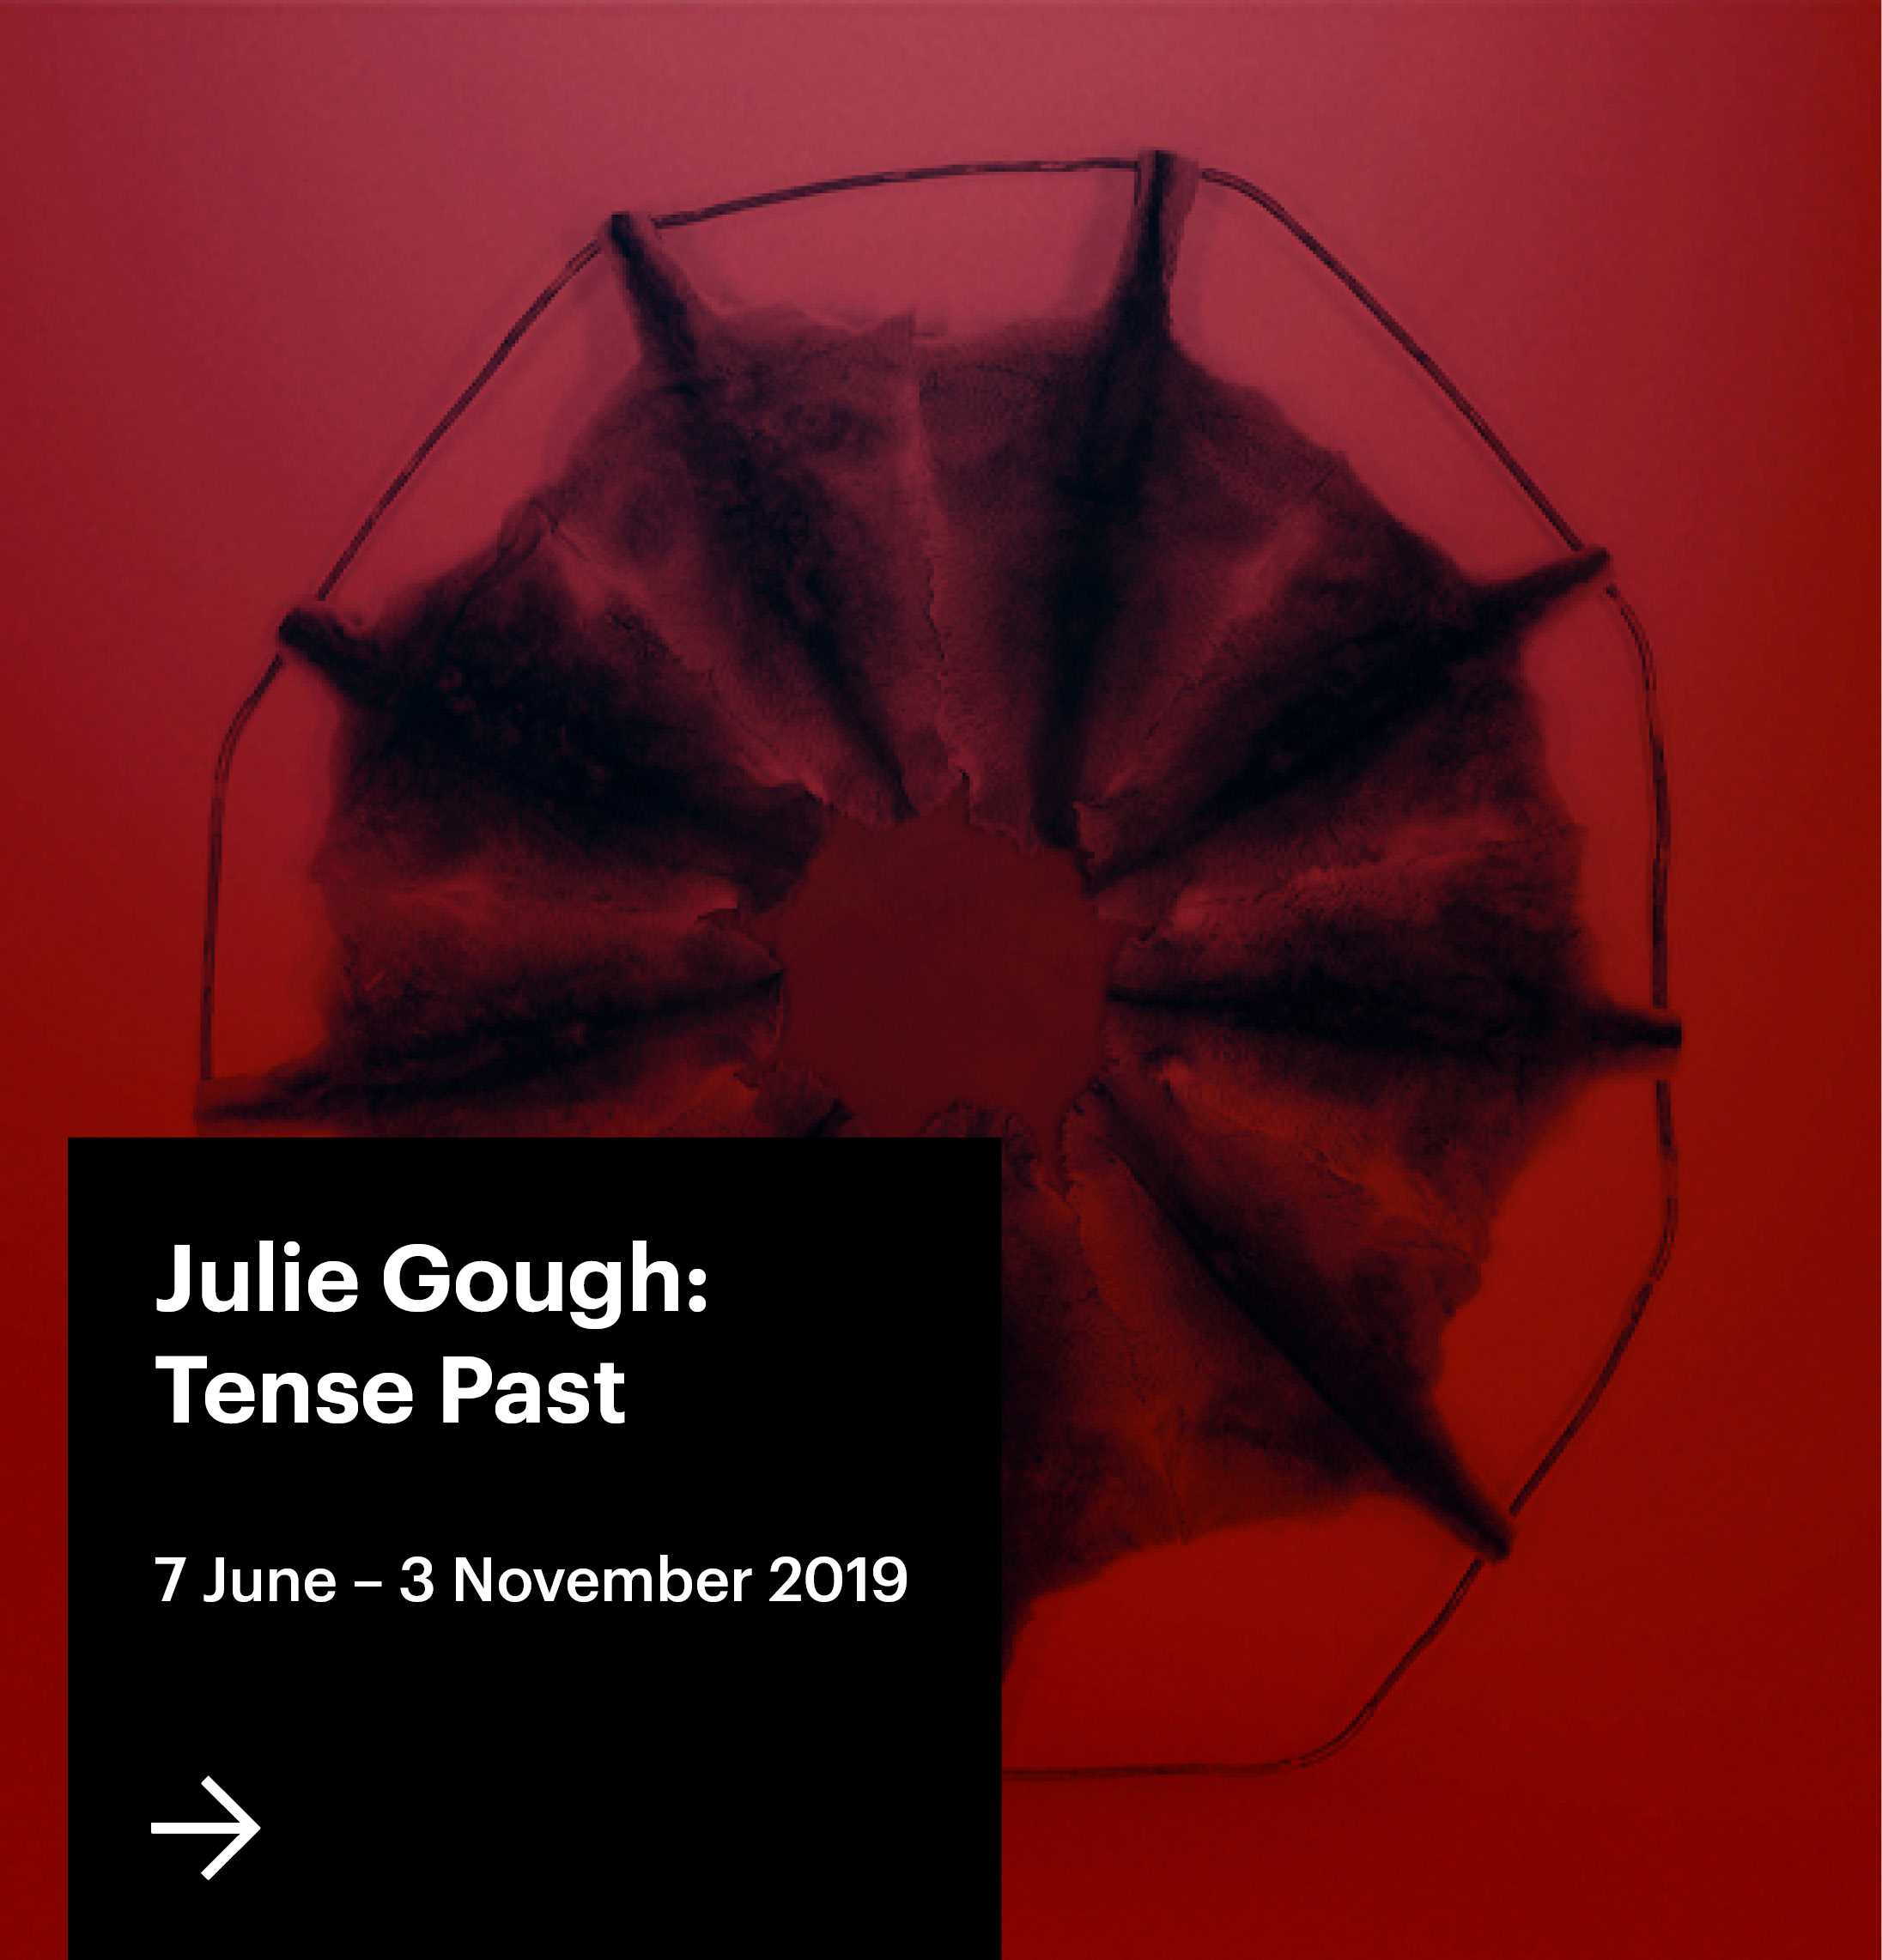 Julie Gough:Tense Past